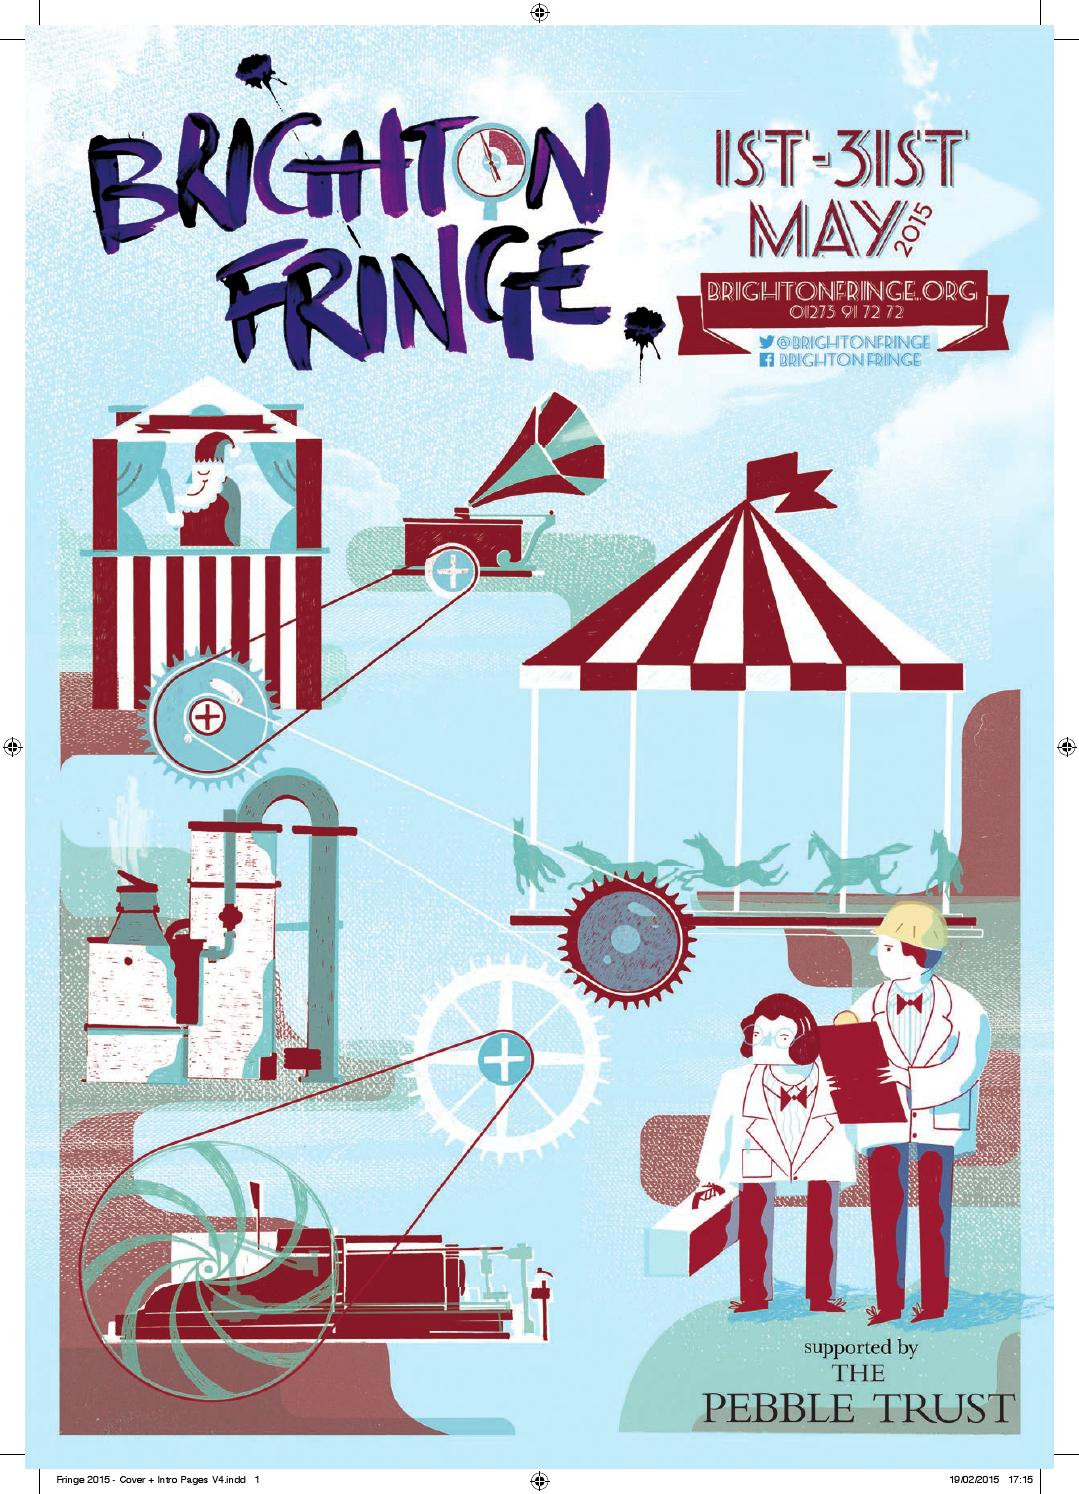 Brighton Fringe 2015 Brochure by Brighton Fringe - issuu